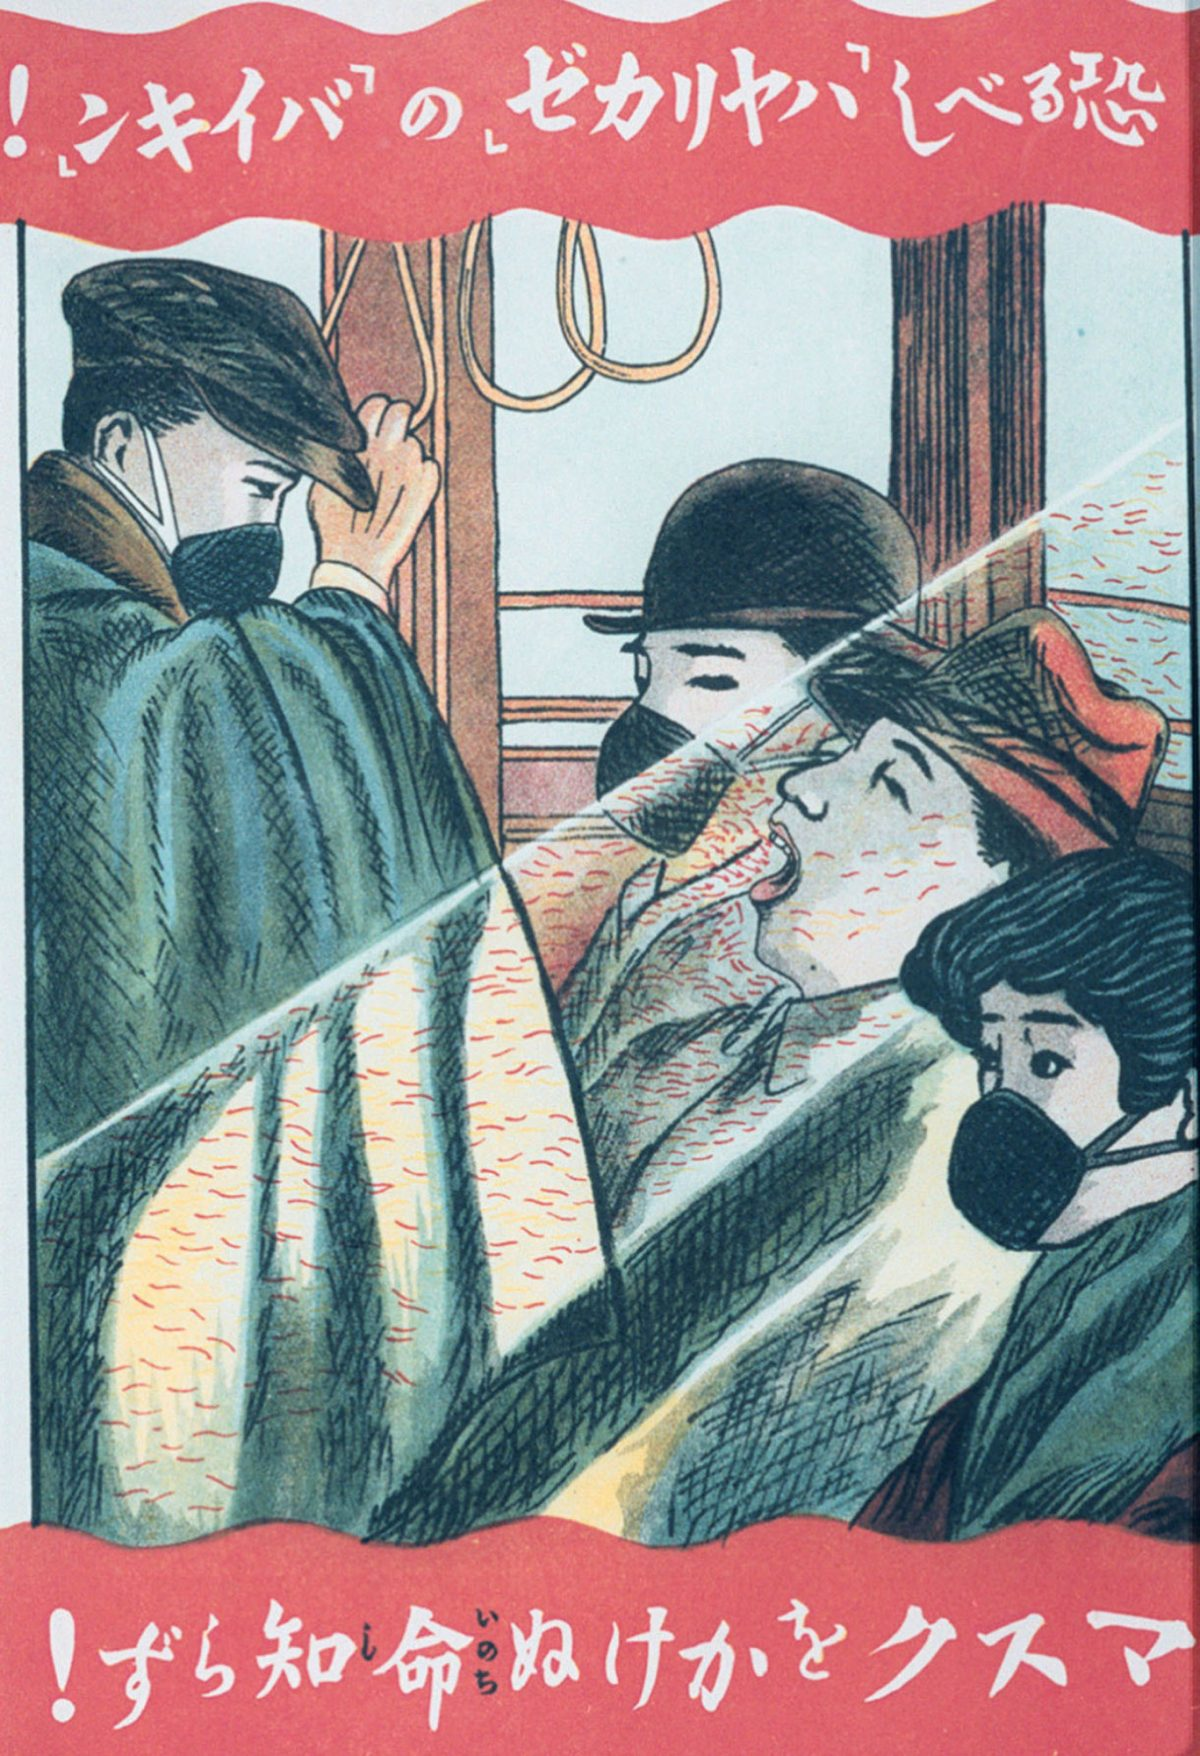 """In 1918, Japan's Central Sanitary Bureau (JCSB) published a manual which introduced the people in ways to recognise and prevent Spanish Flu (Supein kaze), the disease that had ravaged humanity claiming as many as 50 million lives. """"There is hardly a school in Tokyo but from which dozens or scores of students and teachers are absent, and it is spreading to offices and factories. The disease has become known as the 'Spanish influenza,'"""" ran a report in The Japan Advertiser (October 27, 1918). Each month during the epidemic, the JCSB published number of deaths by prefecture. From July 2018 and September 1919, 21 million Japanese contracted the virus, from a population of 51 million. There were 257,000 deaths. 455-page manual featured charts and 4 rules to beat the bug: """"stay away""""; """"cover your mouth and nose""""; """"get vaccinated"""" ; and """"gargle"""". It was produced in association with a set of posters."""